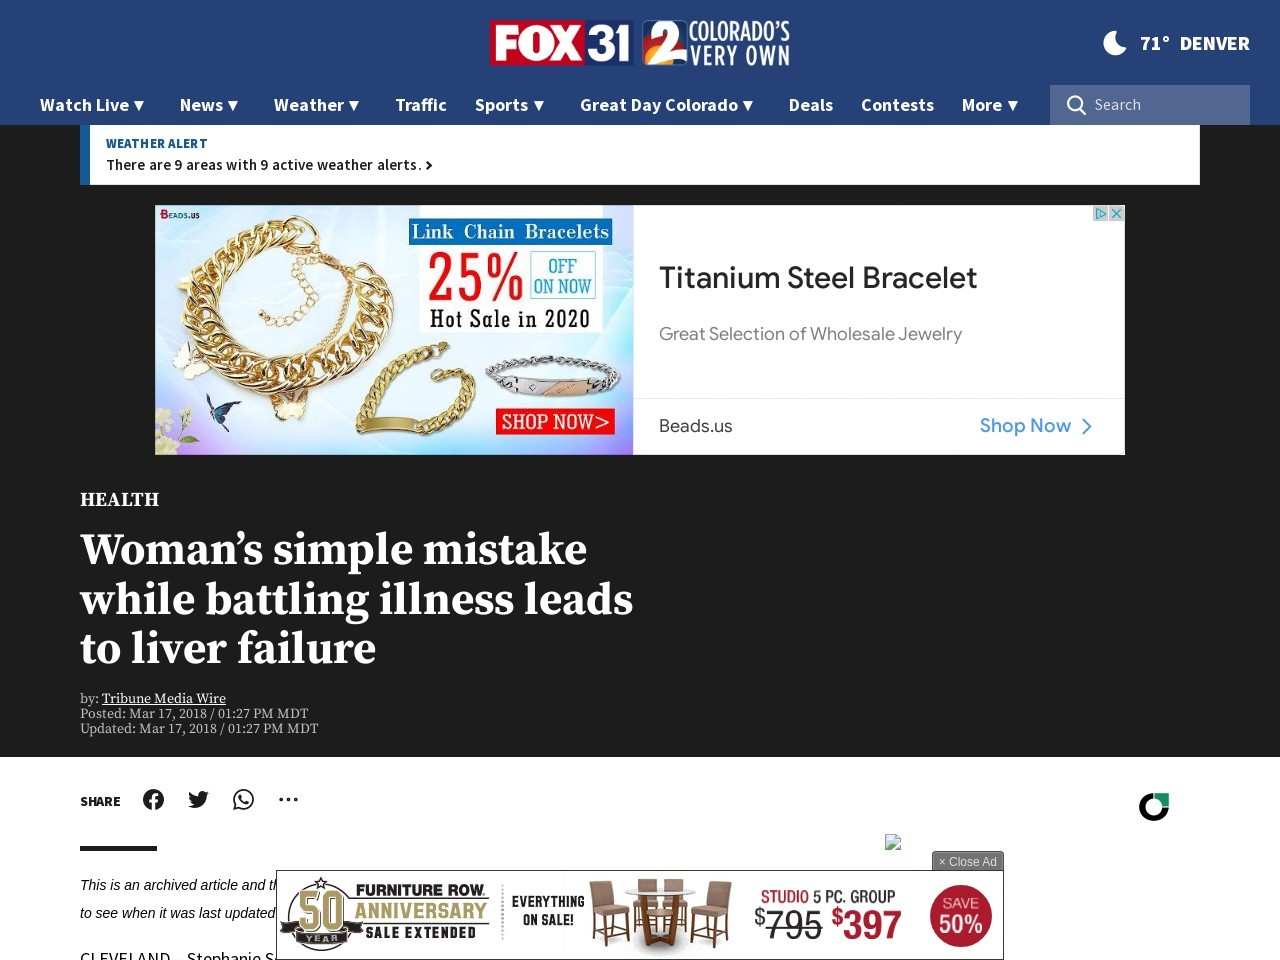 Woman's simple mistake while battling illness leads to liver failure